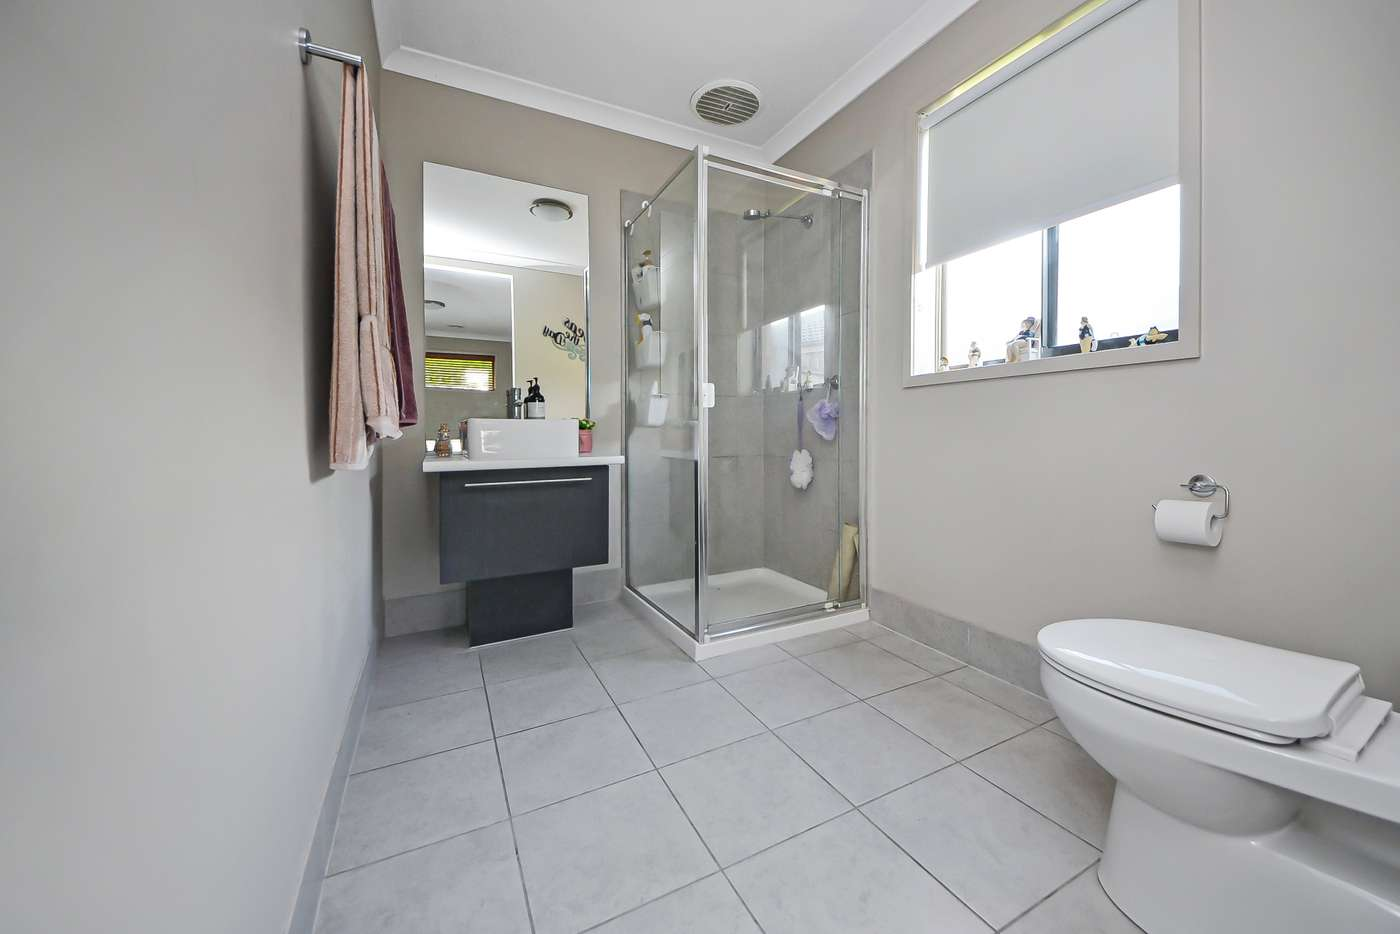 Sixth view of Homely house listing, 5 Victory Court, Portland VIC 3305